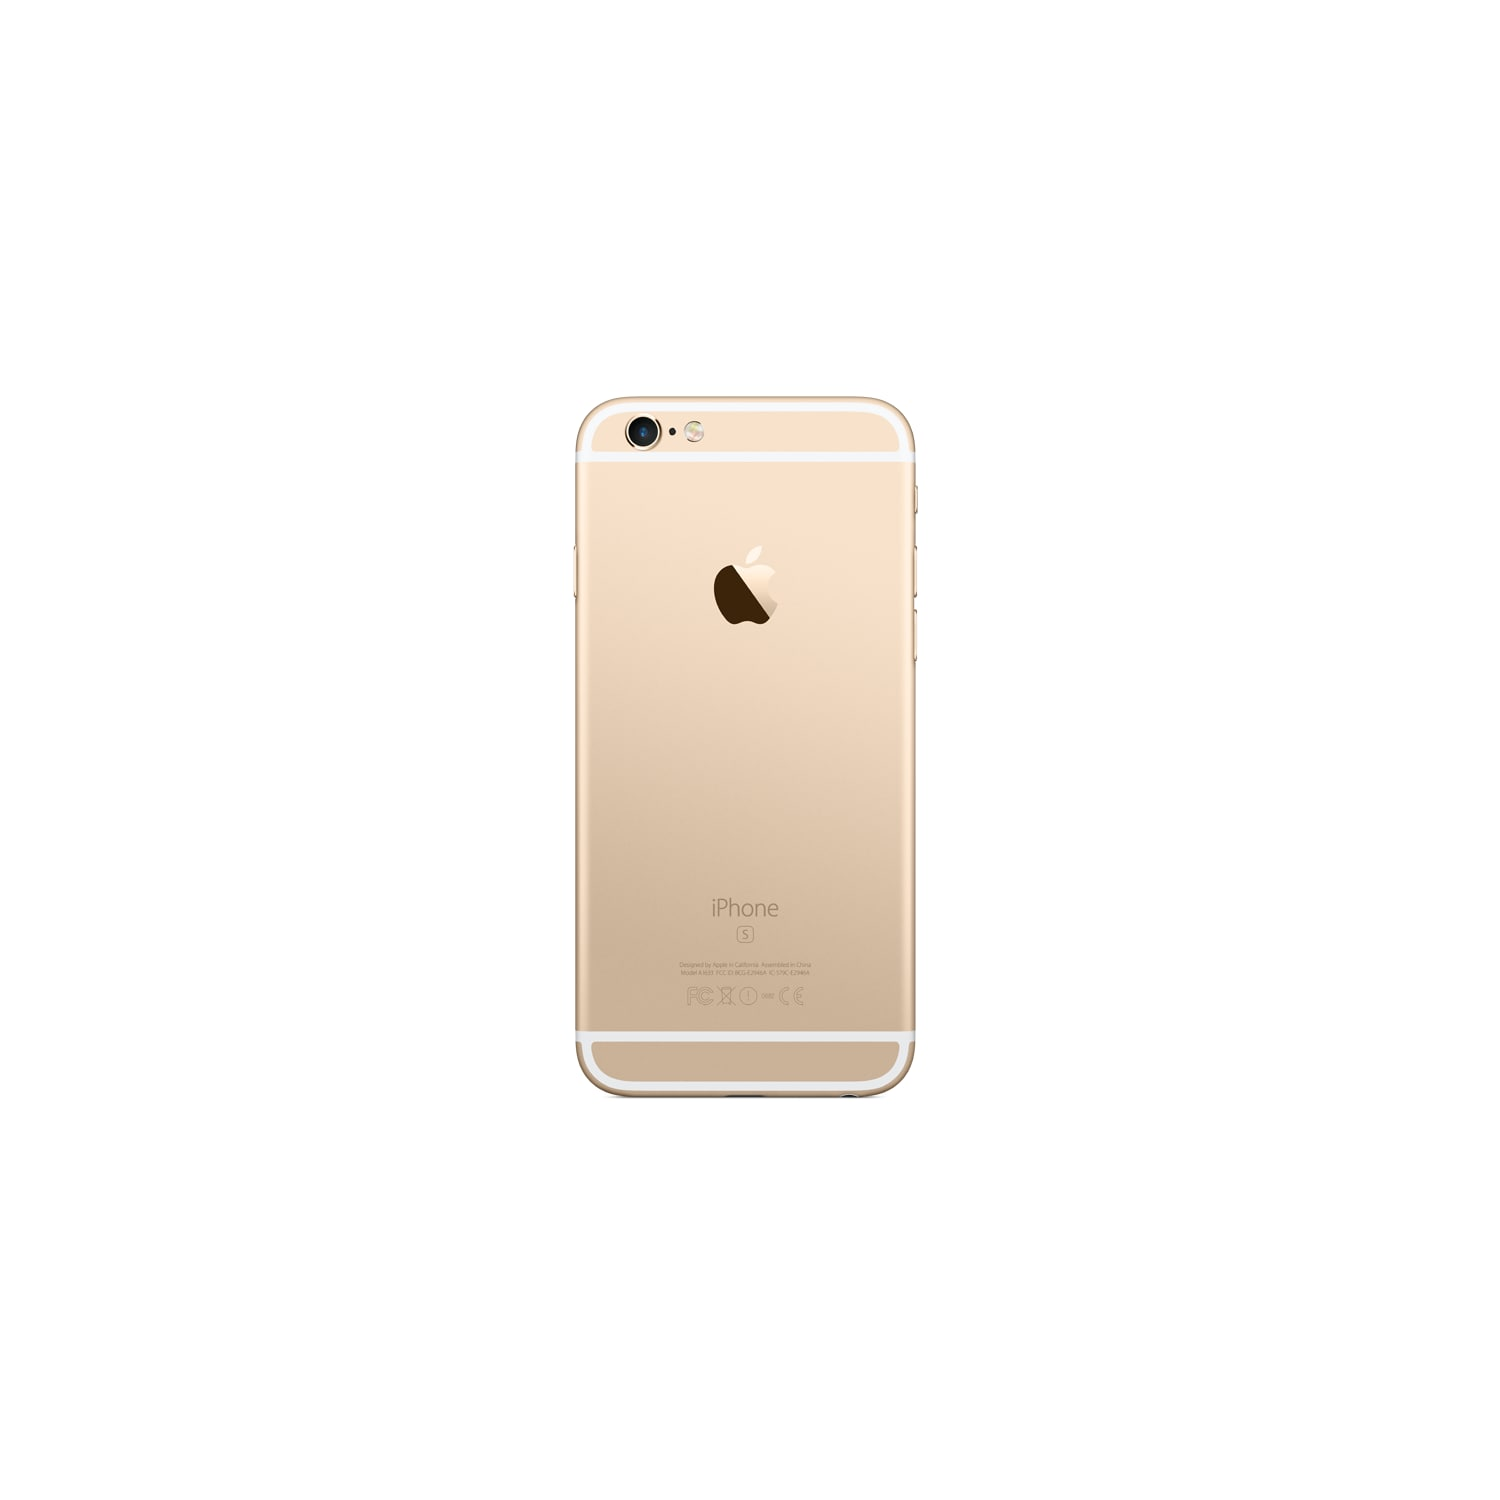 Smartfon APPLE iPhone 6s 128GB Złoty